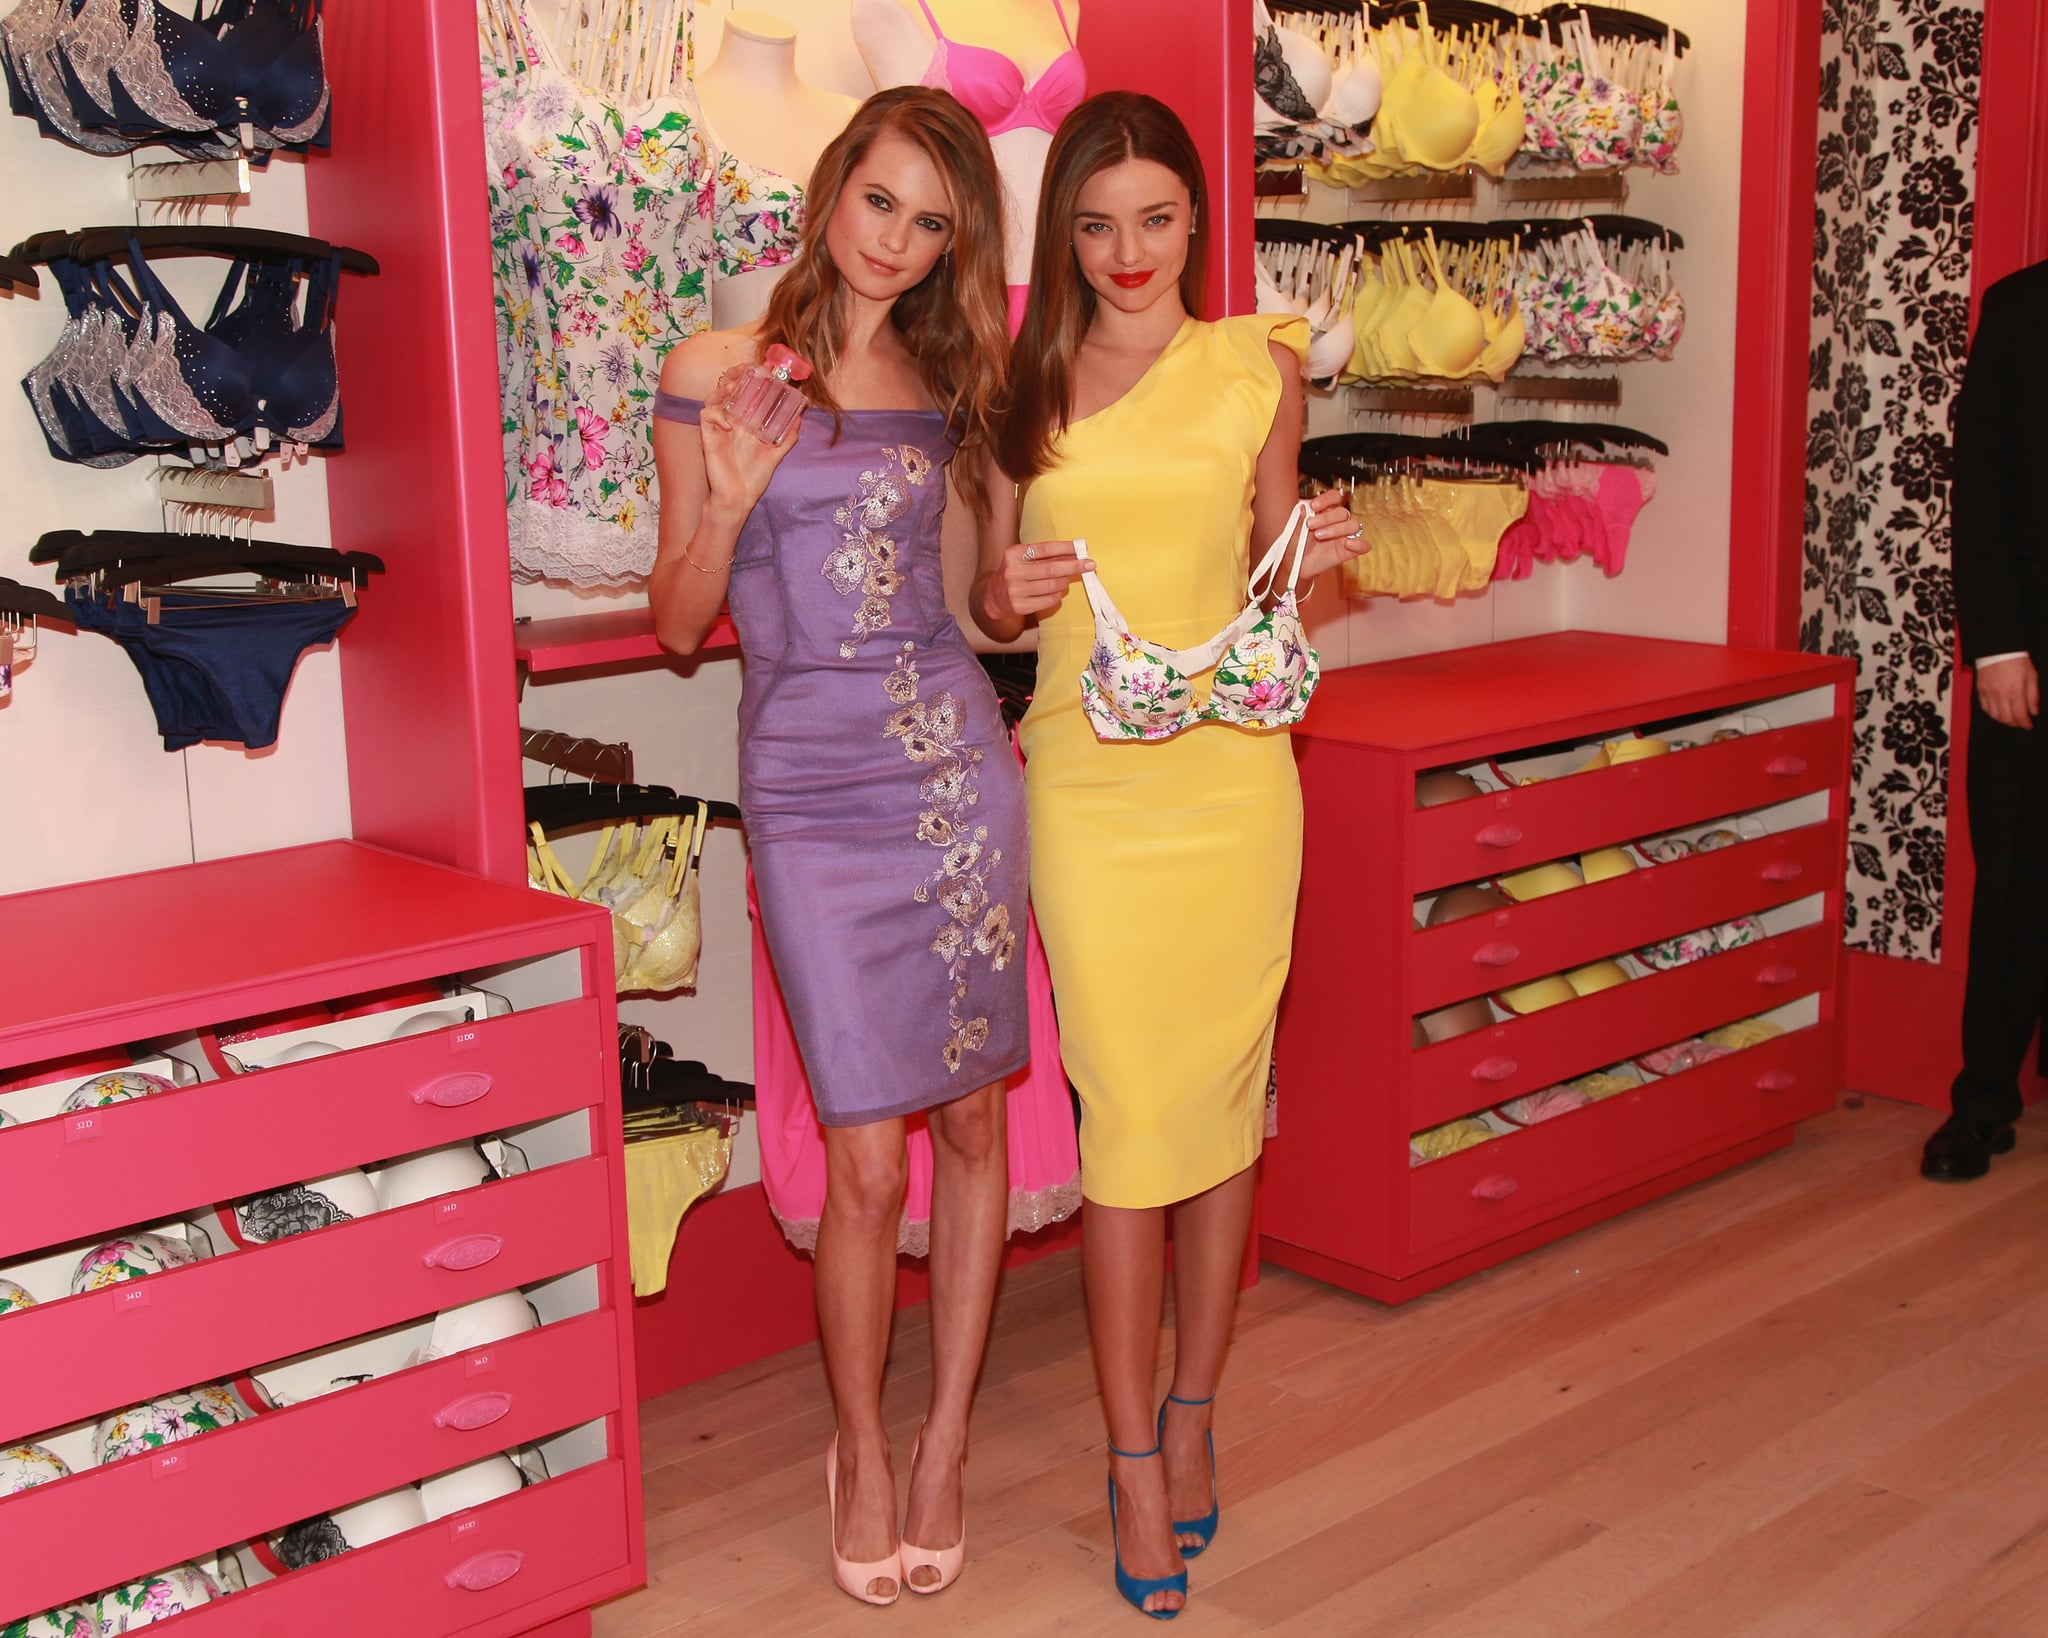 Miranda Kerr Has a Fabulous Morning With Victoria's Secret and Behati Prinsloo